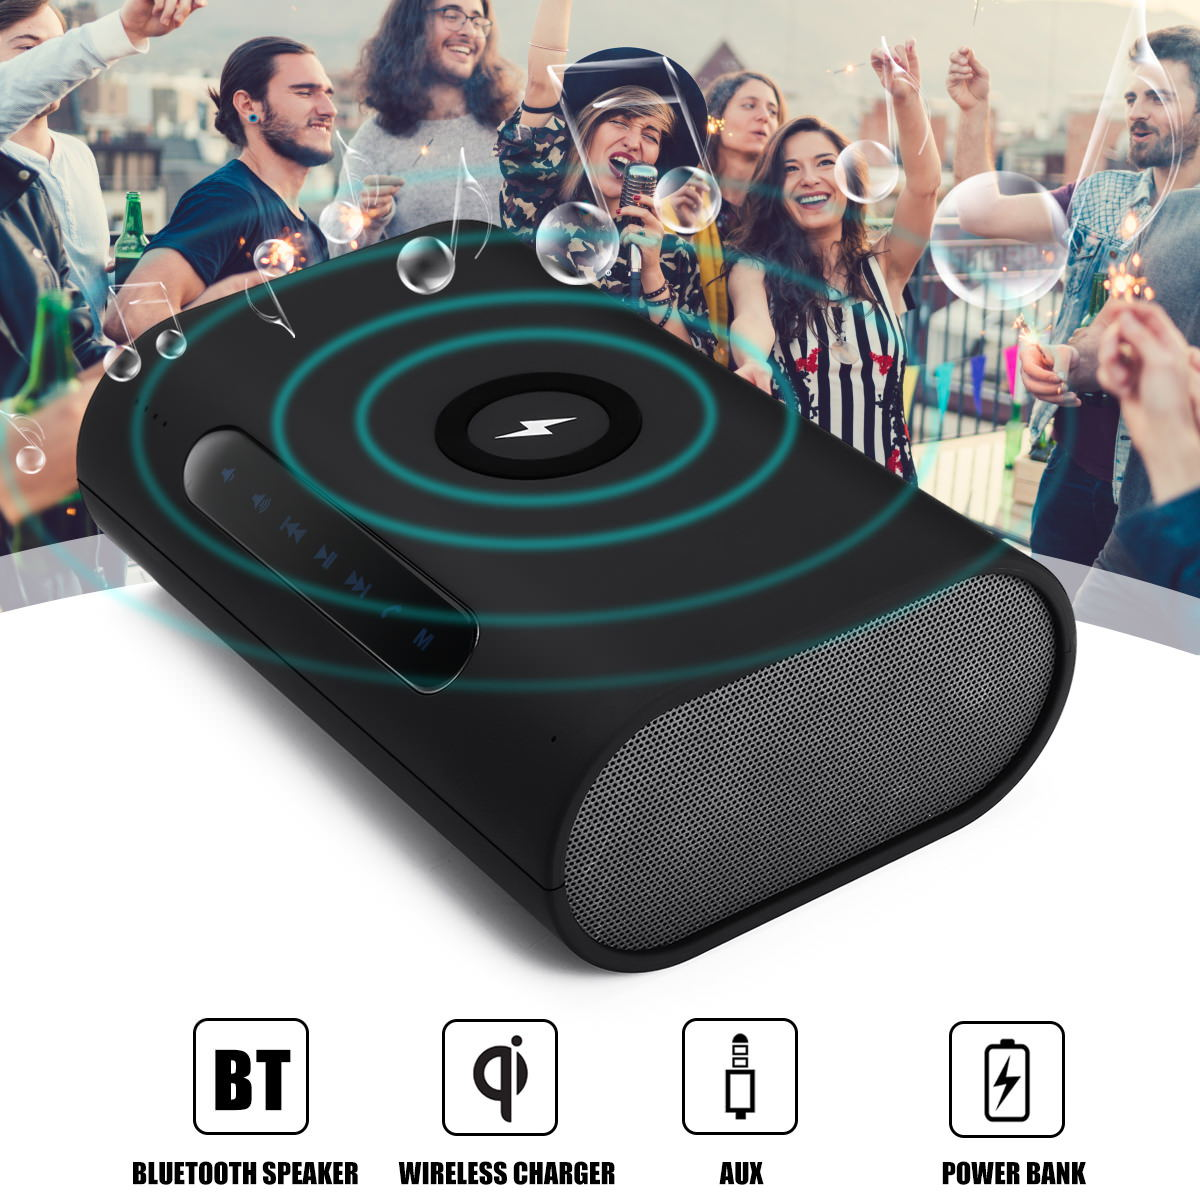 3 in 1 portable wireless charger/bluetooth speaker/power bank 2019